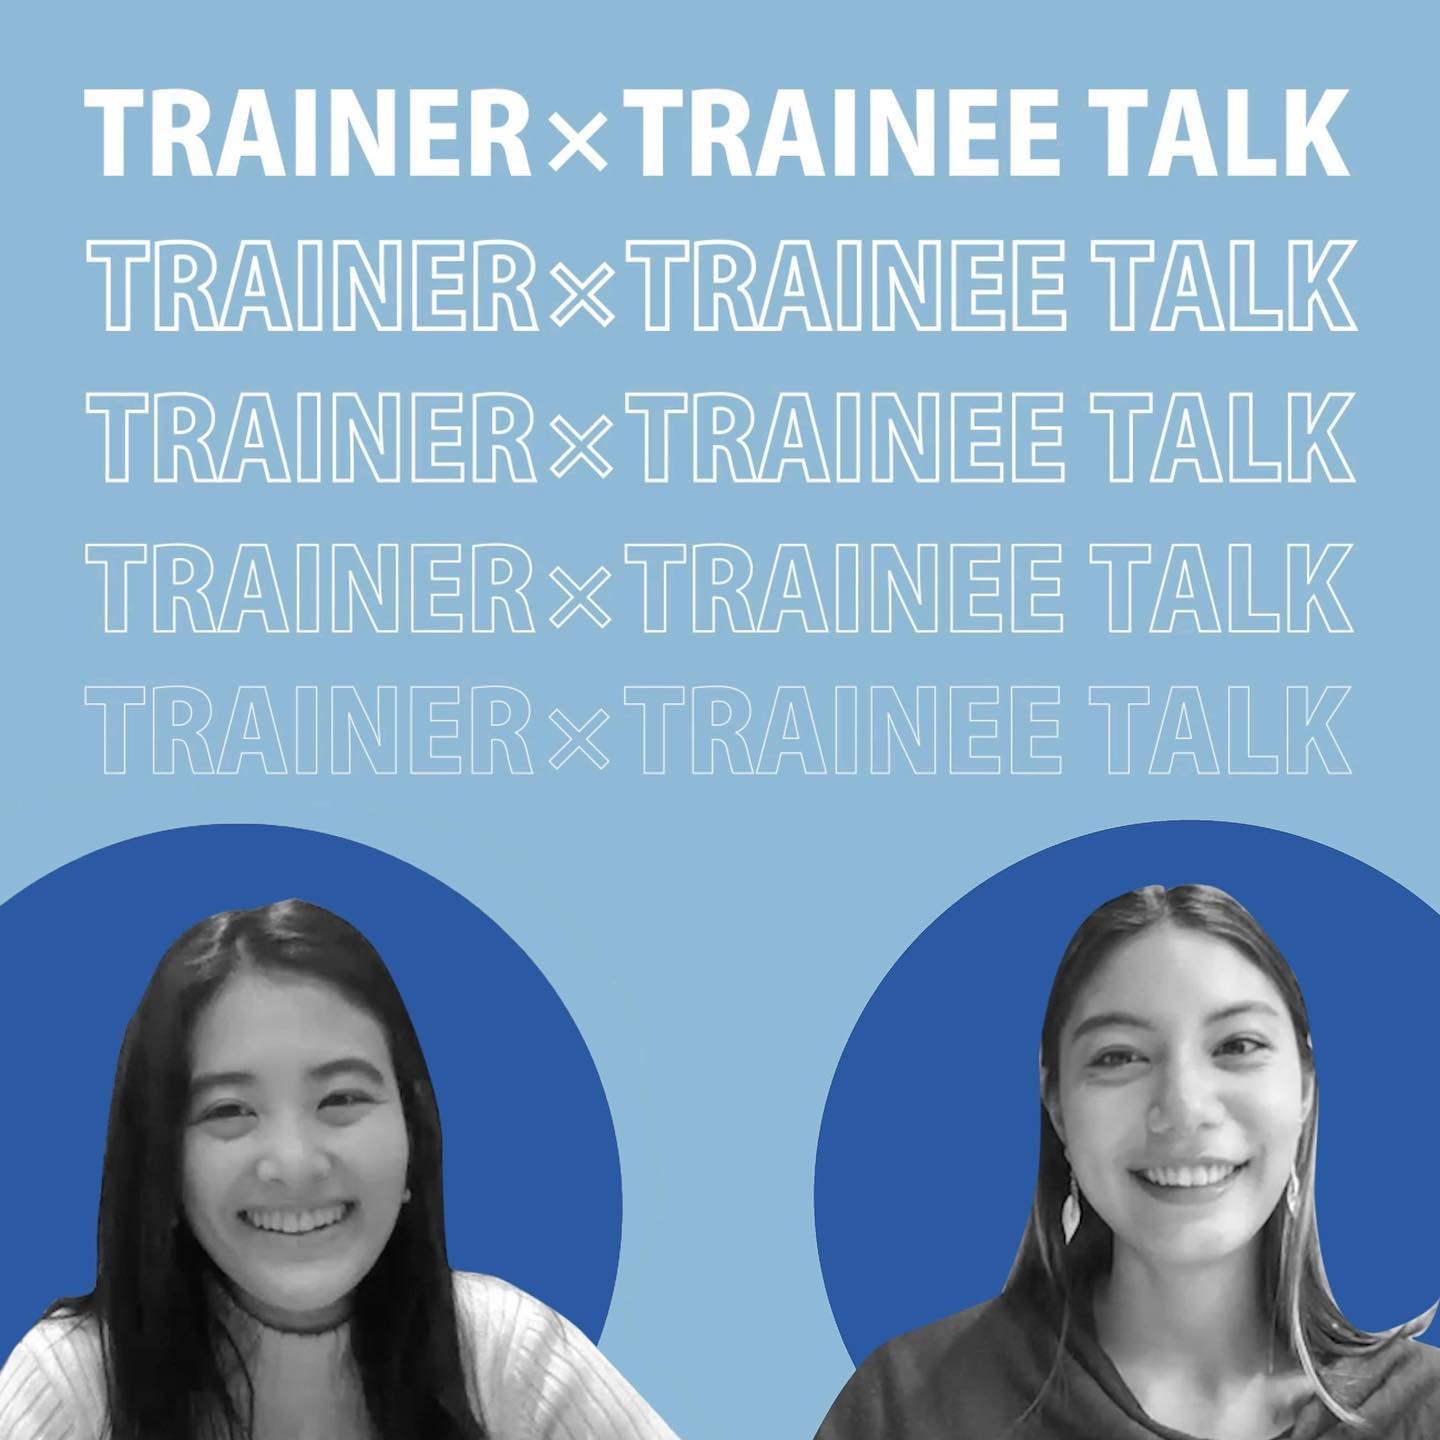 TRAINER×TRAINEE TALK Watch two of our global production managers talk about their experience working at AOI Global! Watch the video on @aoirecruit 's IGTV ・・・